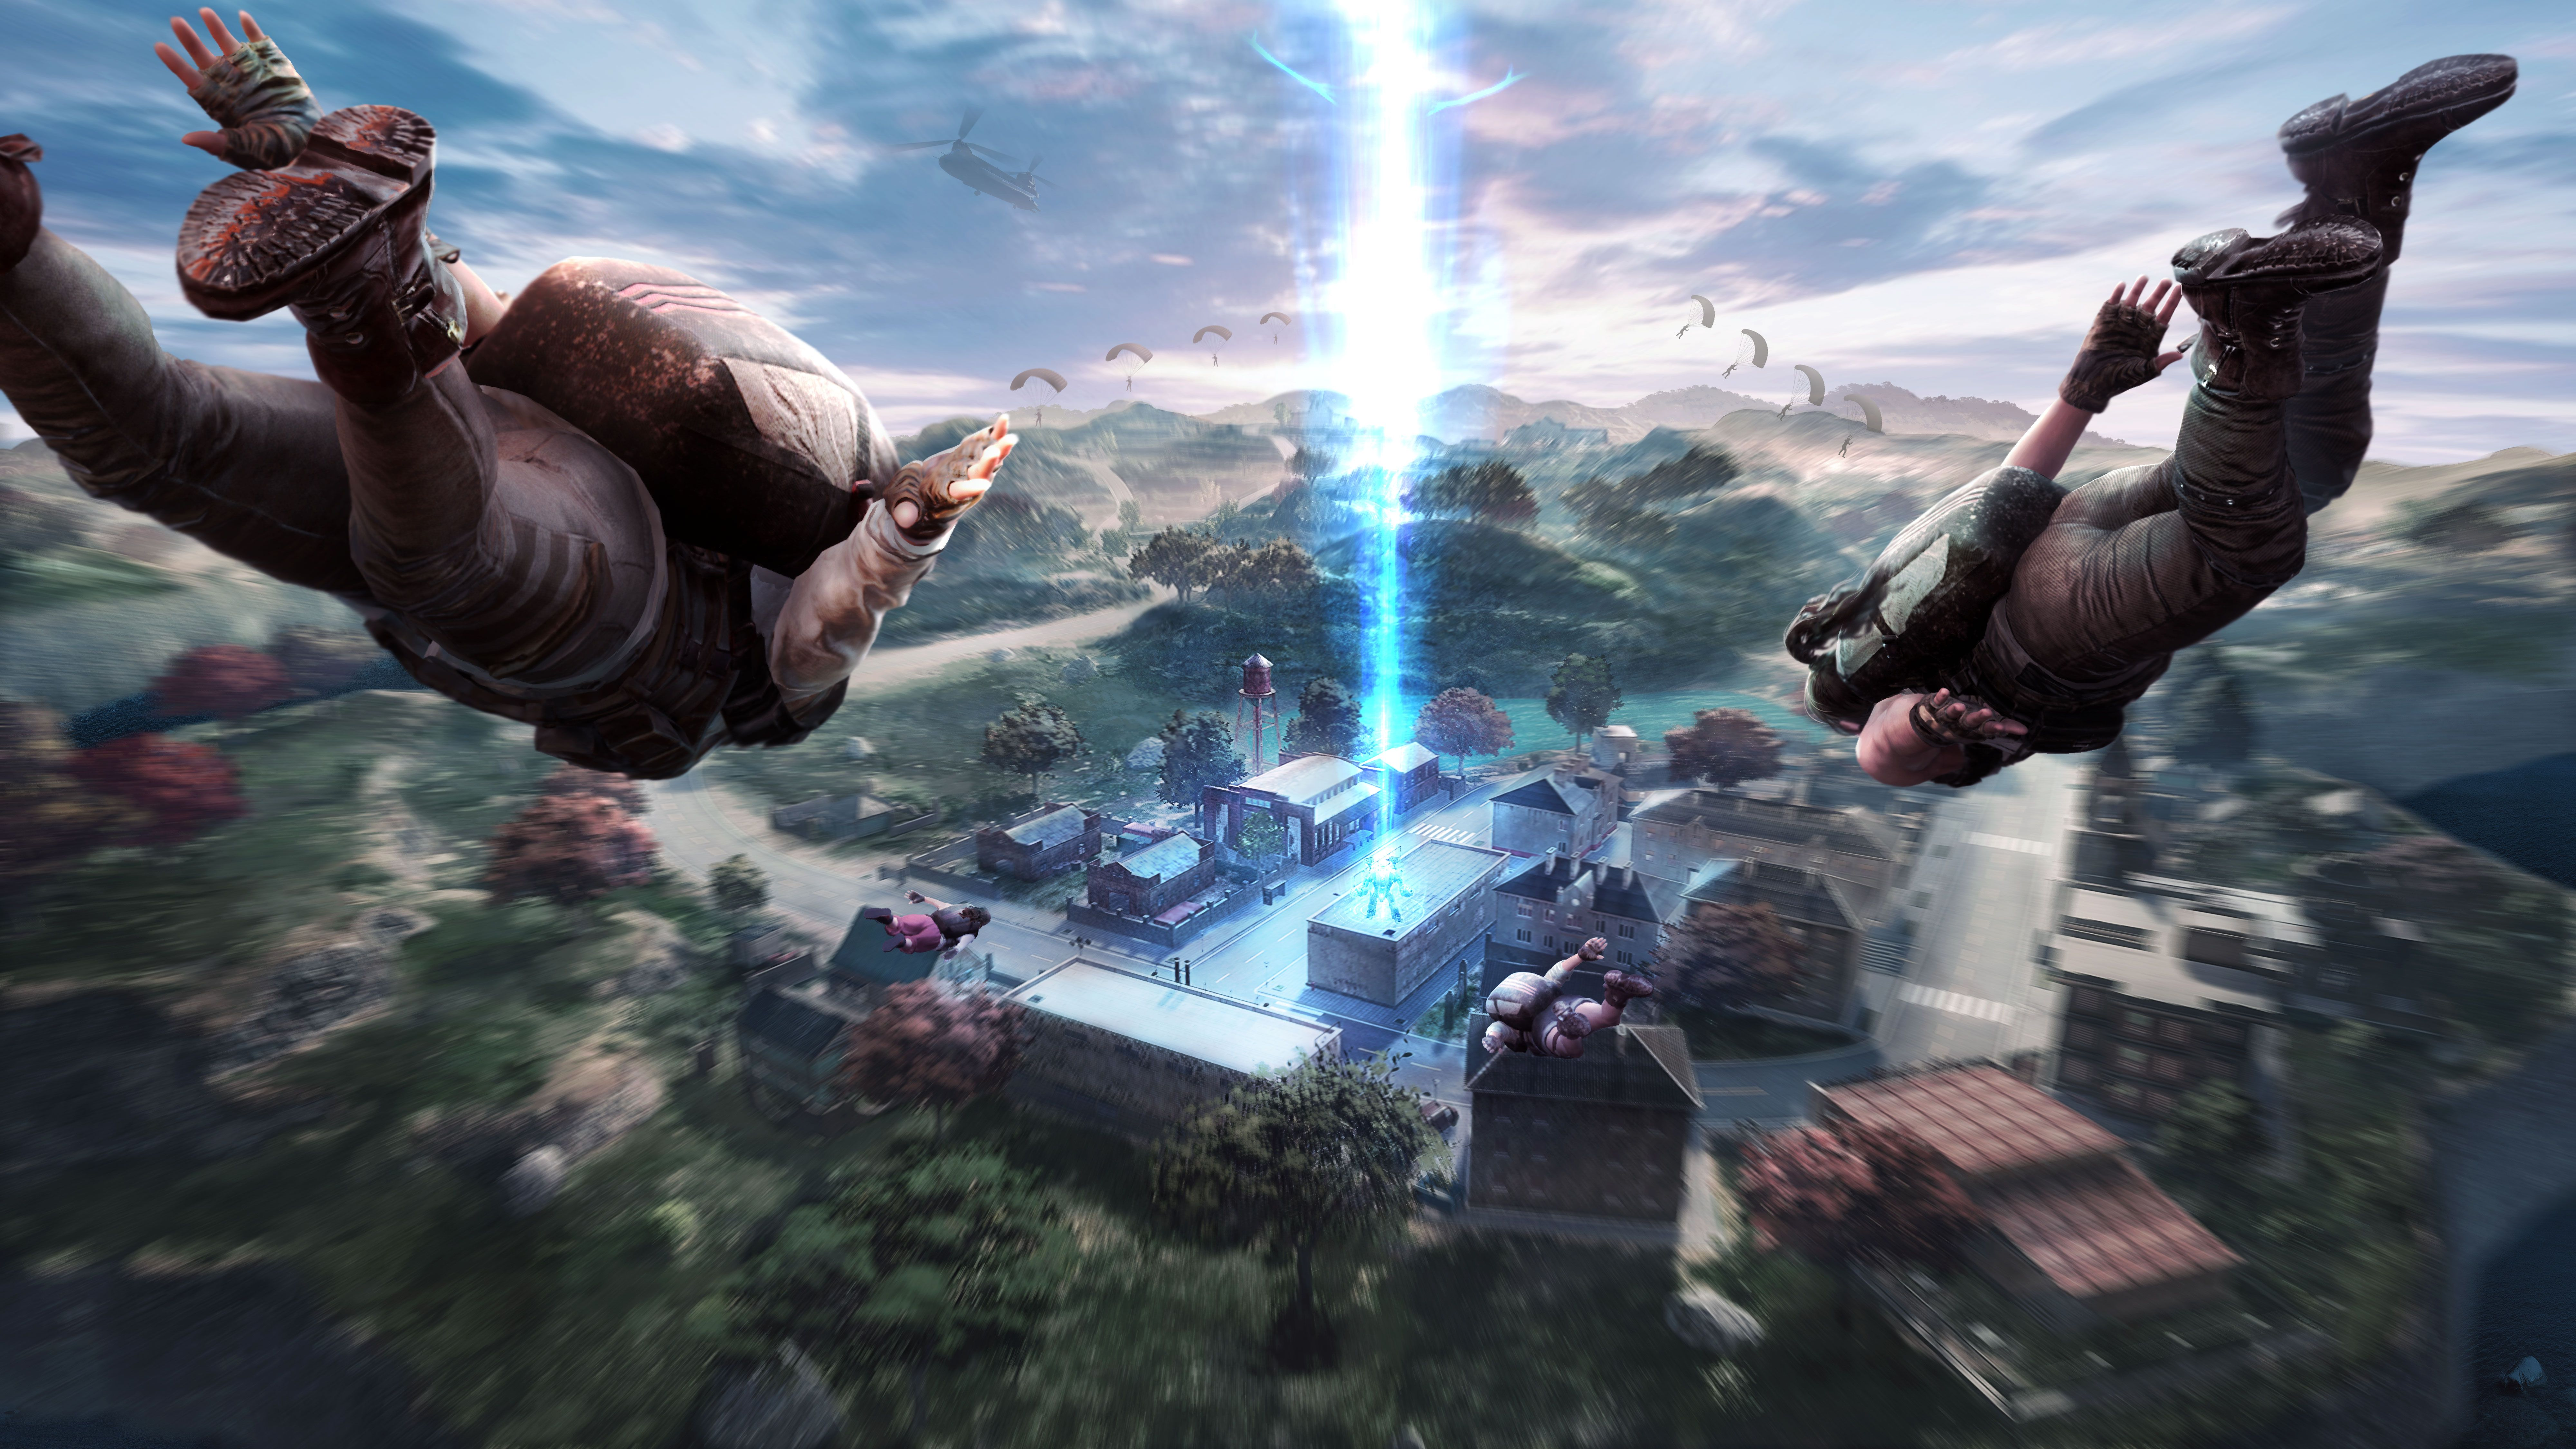 8K Resolution Gaming Wallpapers - Top Free 8K Resolution ...